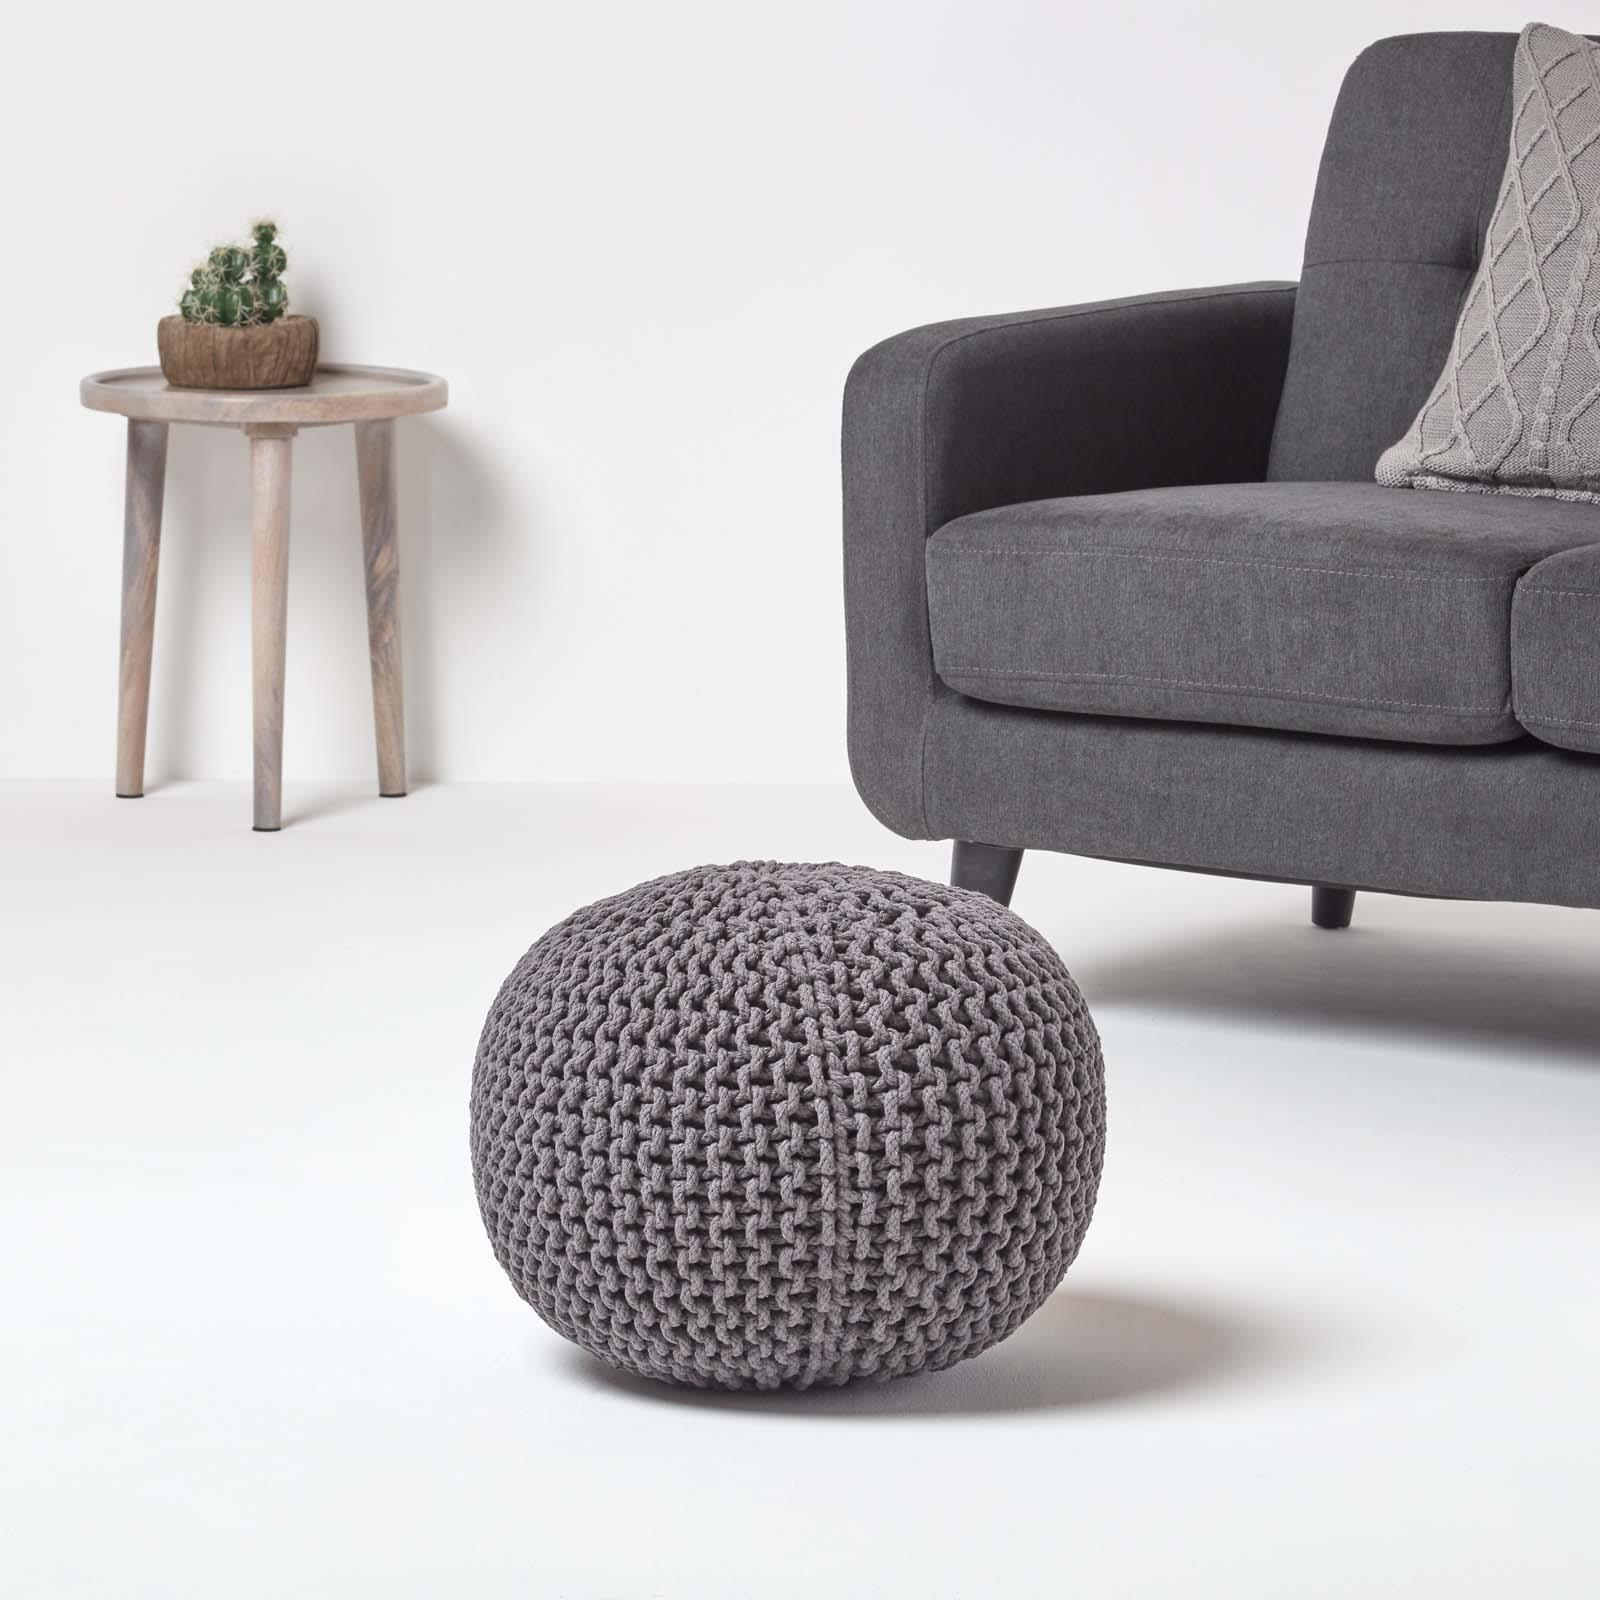 Hand-Knitted-100-Cotton-Pouffes-Round-Sphere-Or-Cube-Square-Chunky-Footstools thumbnail 57